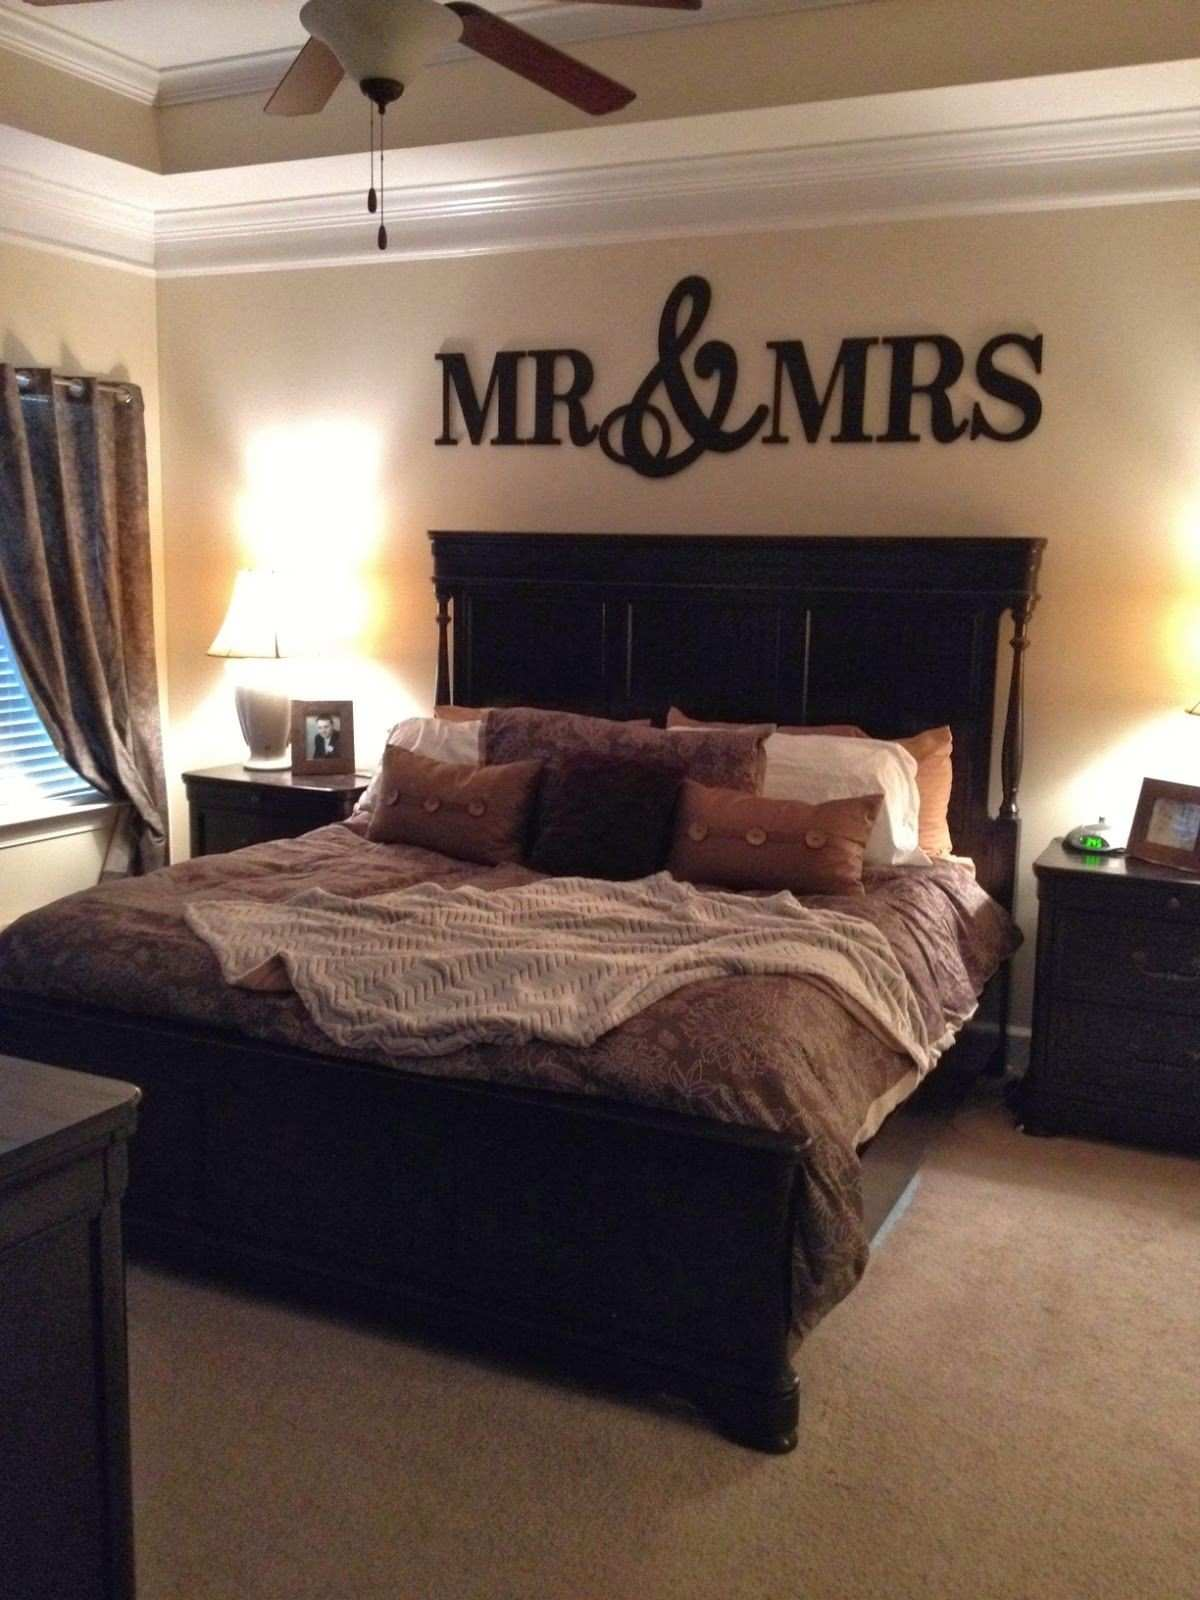 MR & MRS Wood Letters Wall Décor Painted Wood Letters Wall Letters